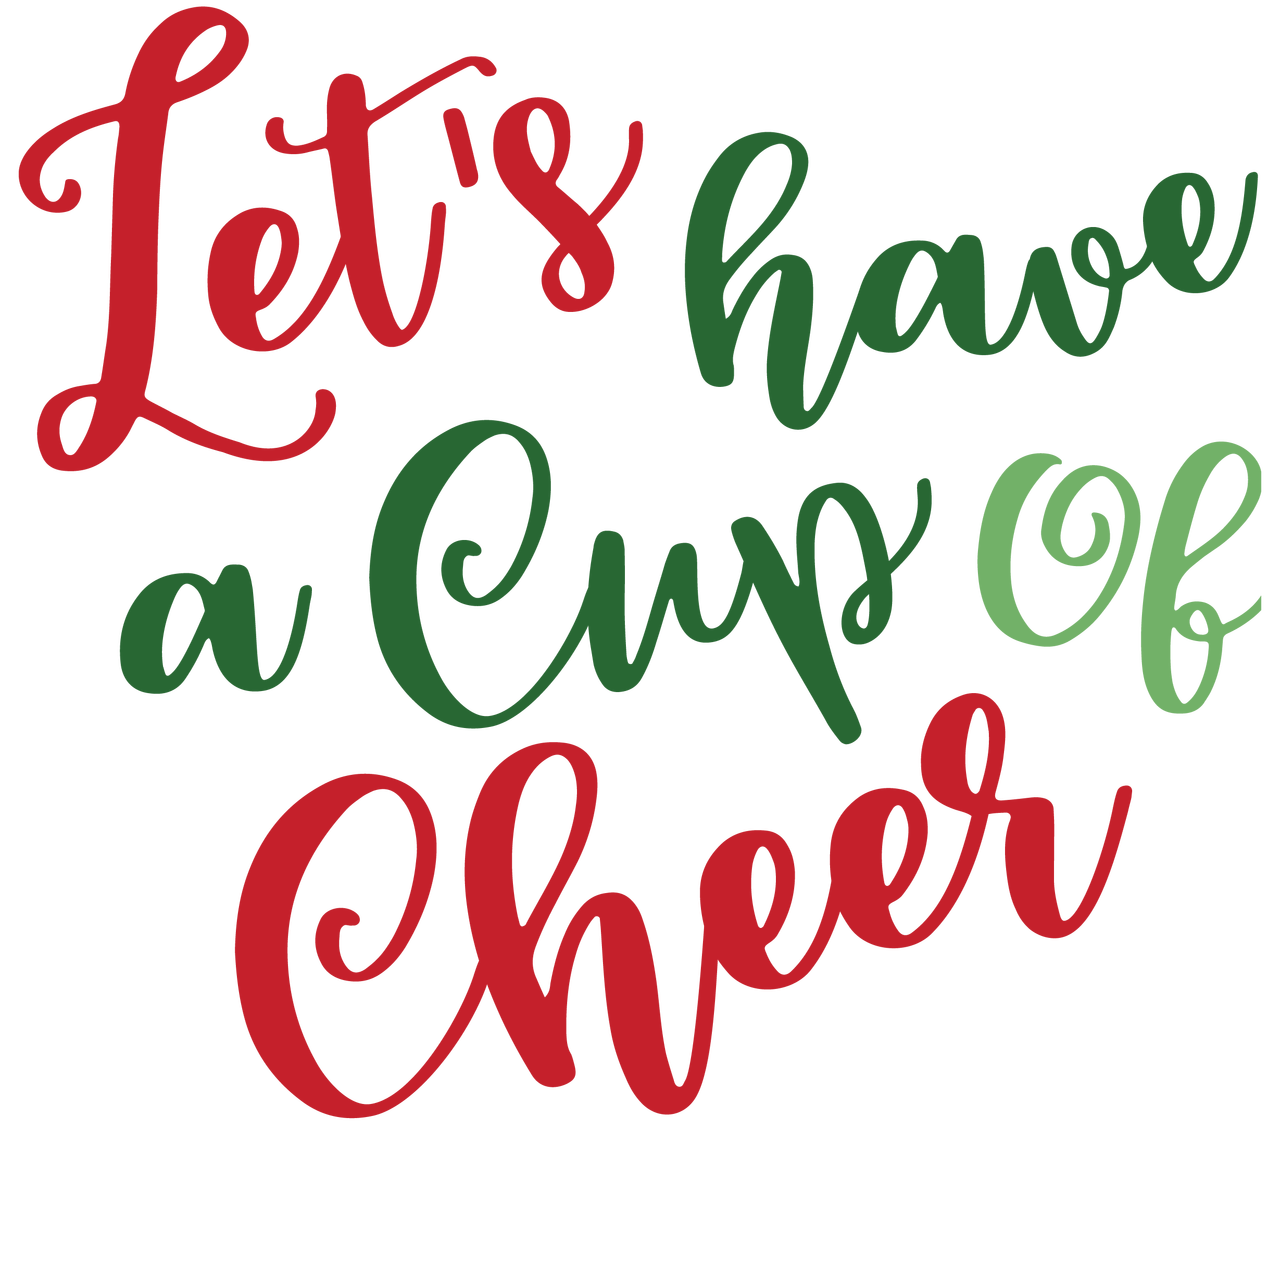 Let's Have a Cup of Cheer SVG Cut File